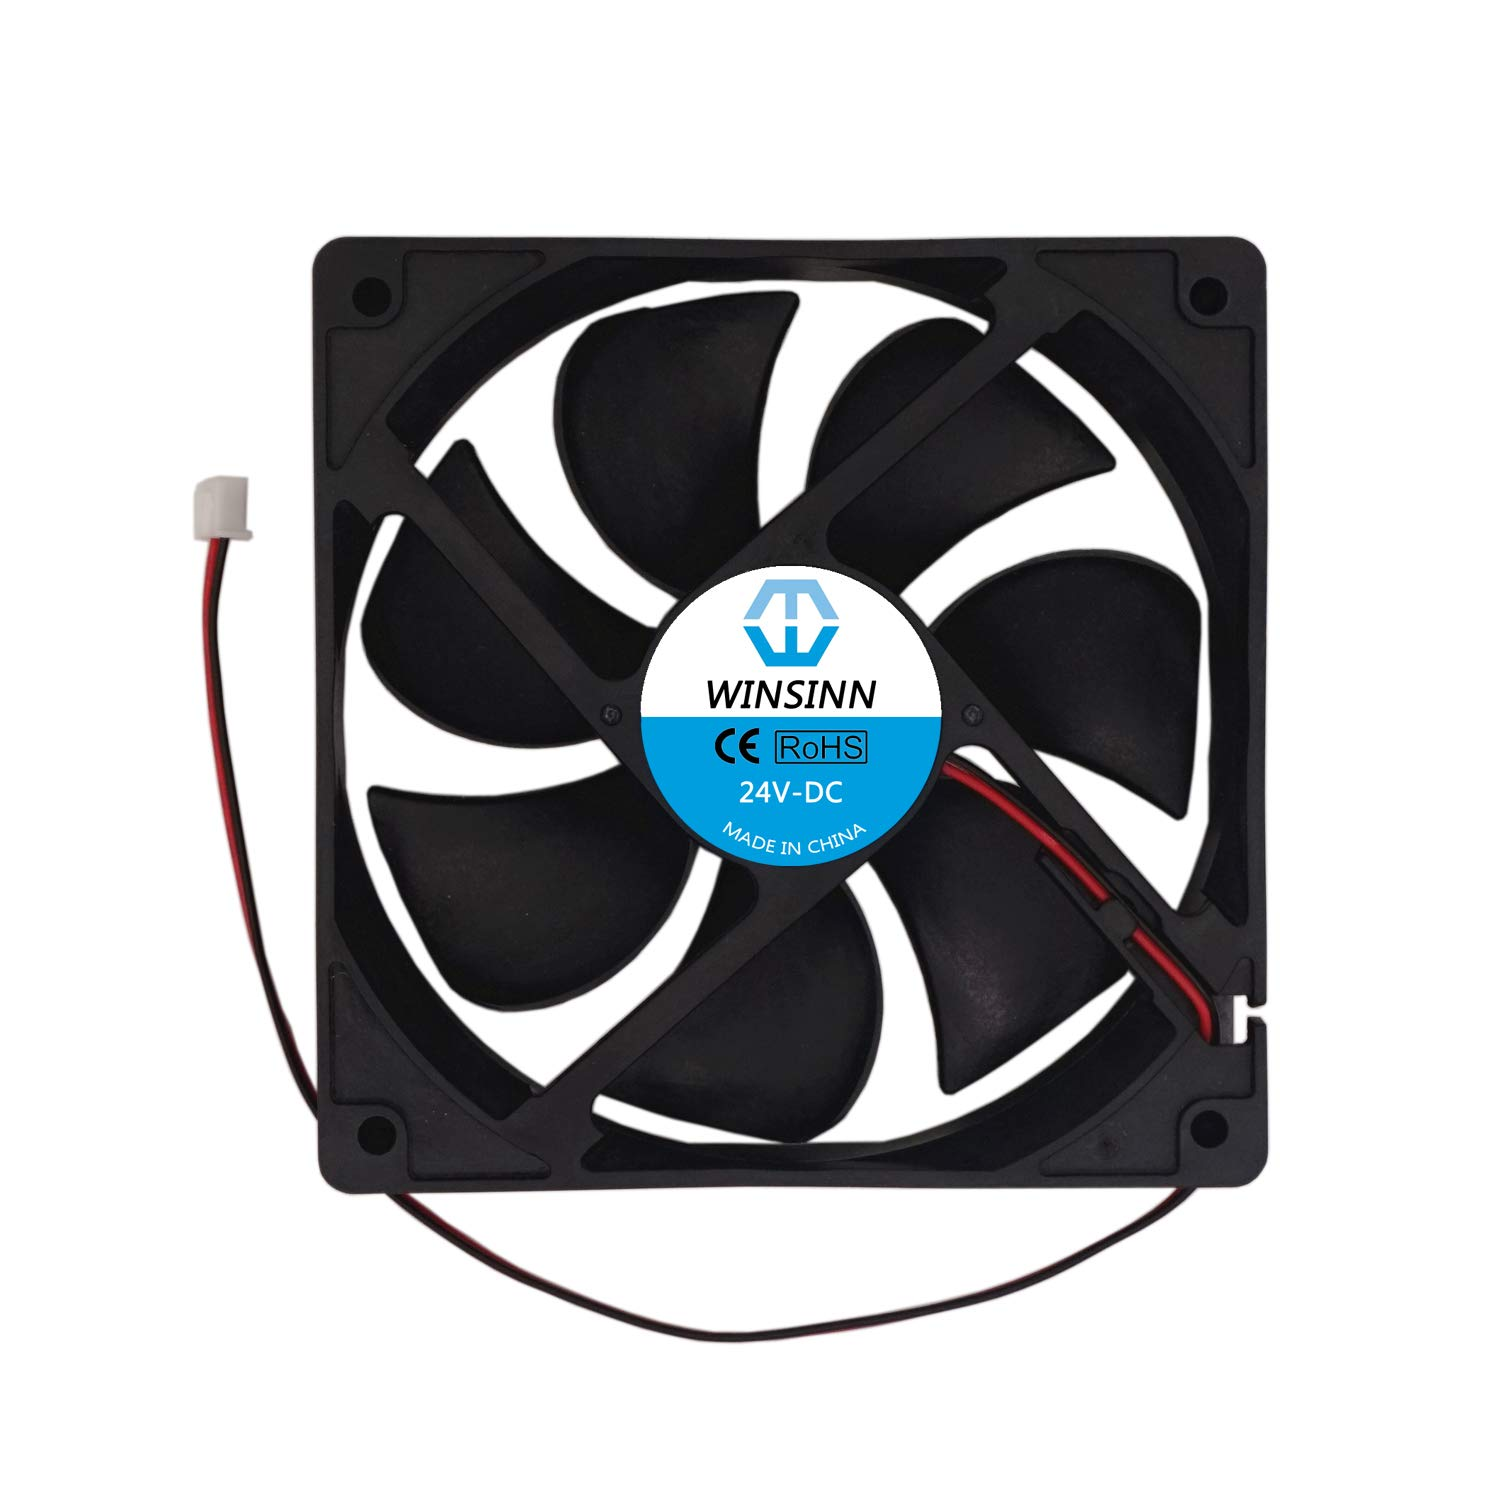 WINSINN 120mm Fan 24V Brushless 12025 120x25mm for Cooling PC Computer Case CPU Coolers Radiators - 2Pin